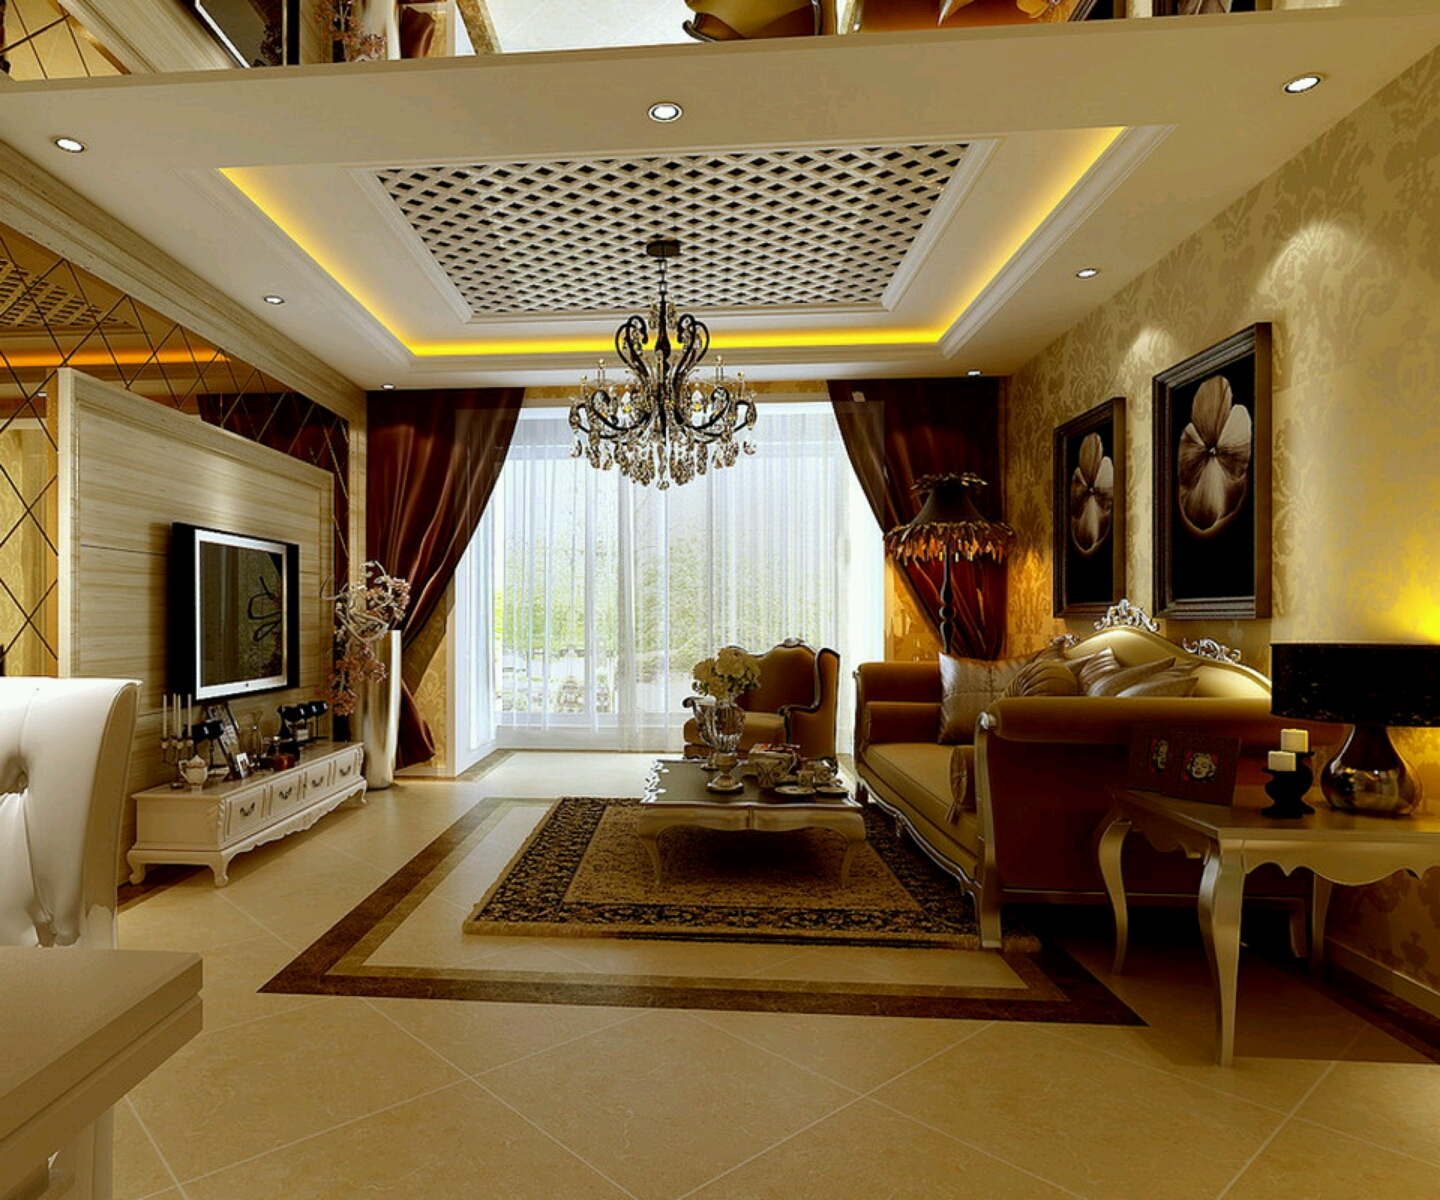 Luxury homes interior decoration living room designs ideas for Internal home decoration